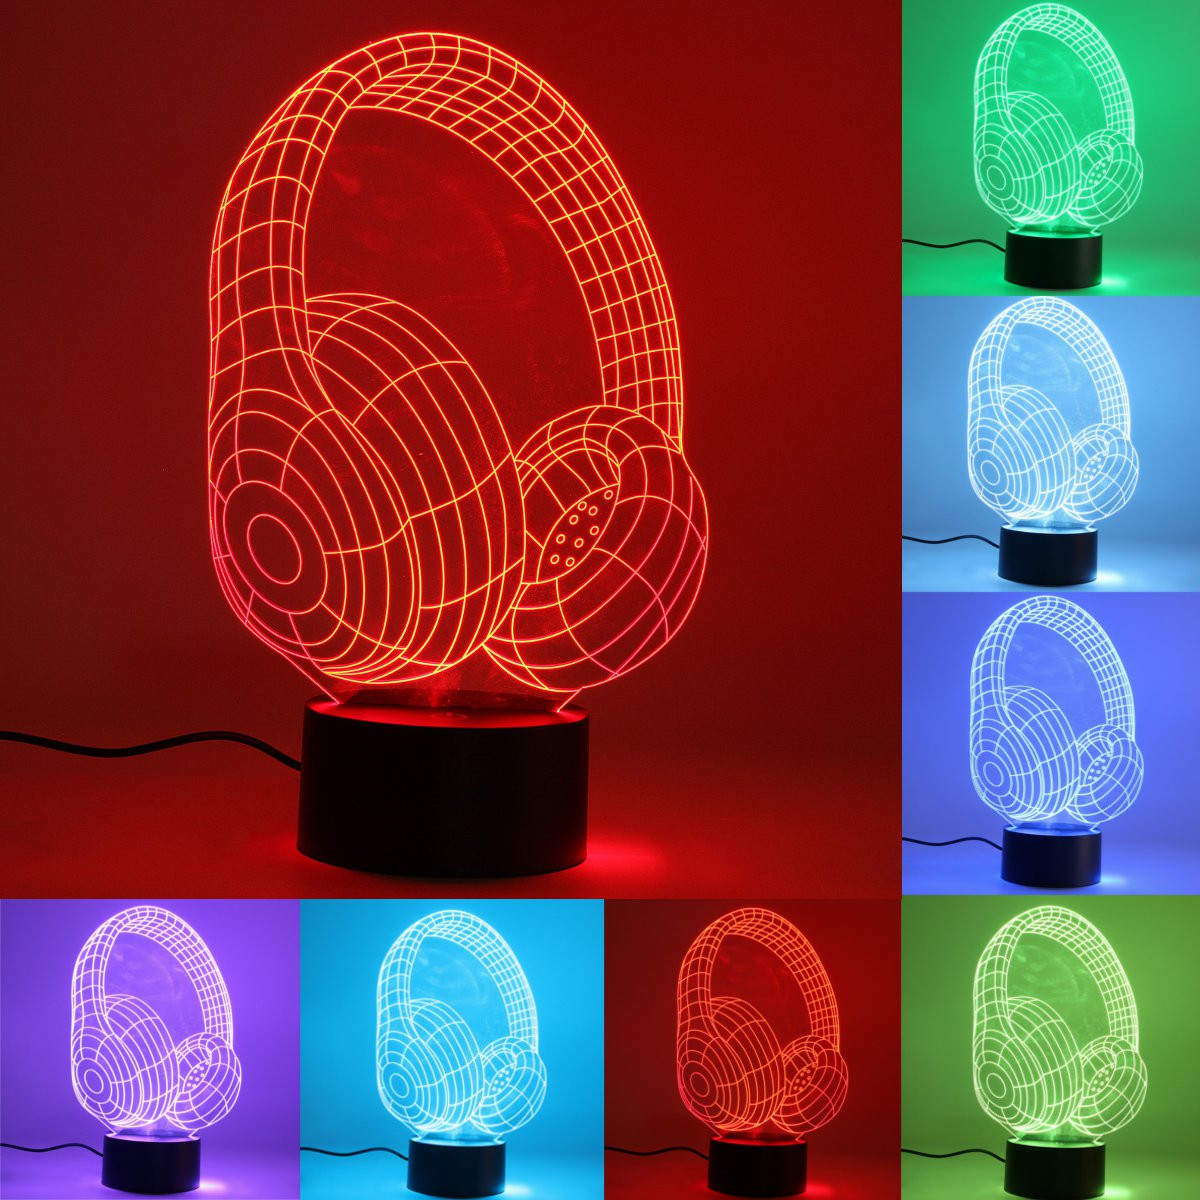 Moaere Headphone 3D Illusion LED Night Light Lamp 7 Colors Gradual Changing Touch Switch USB Table Lamp Valentine's Day gift for Lover or Kids